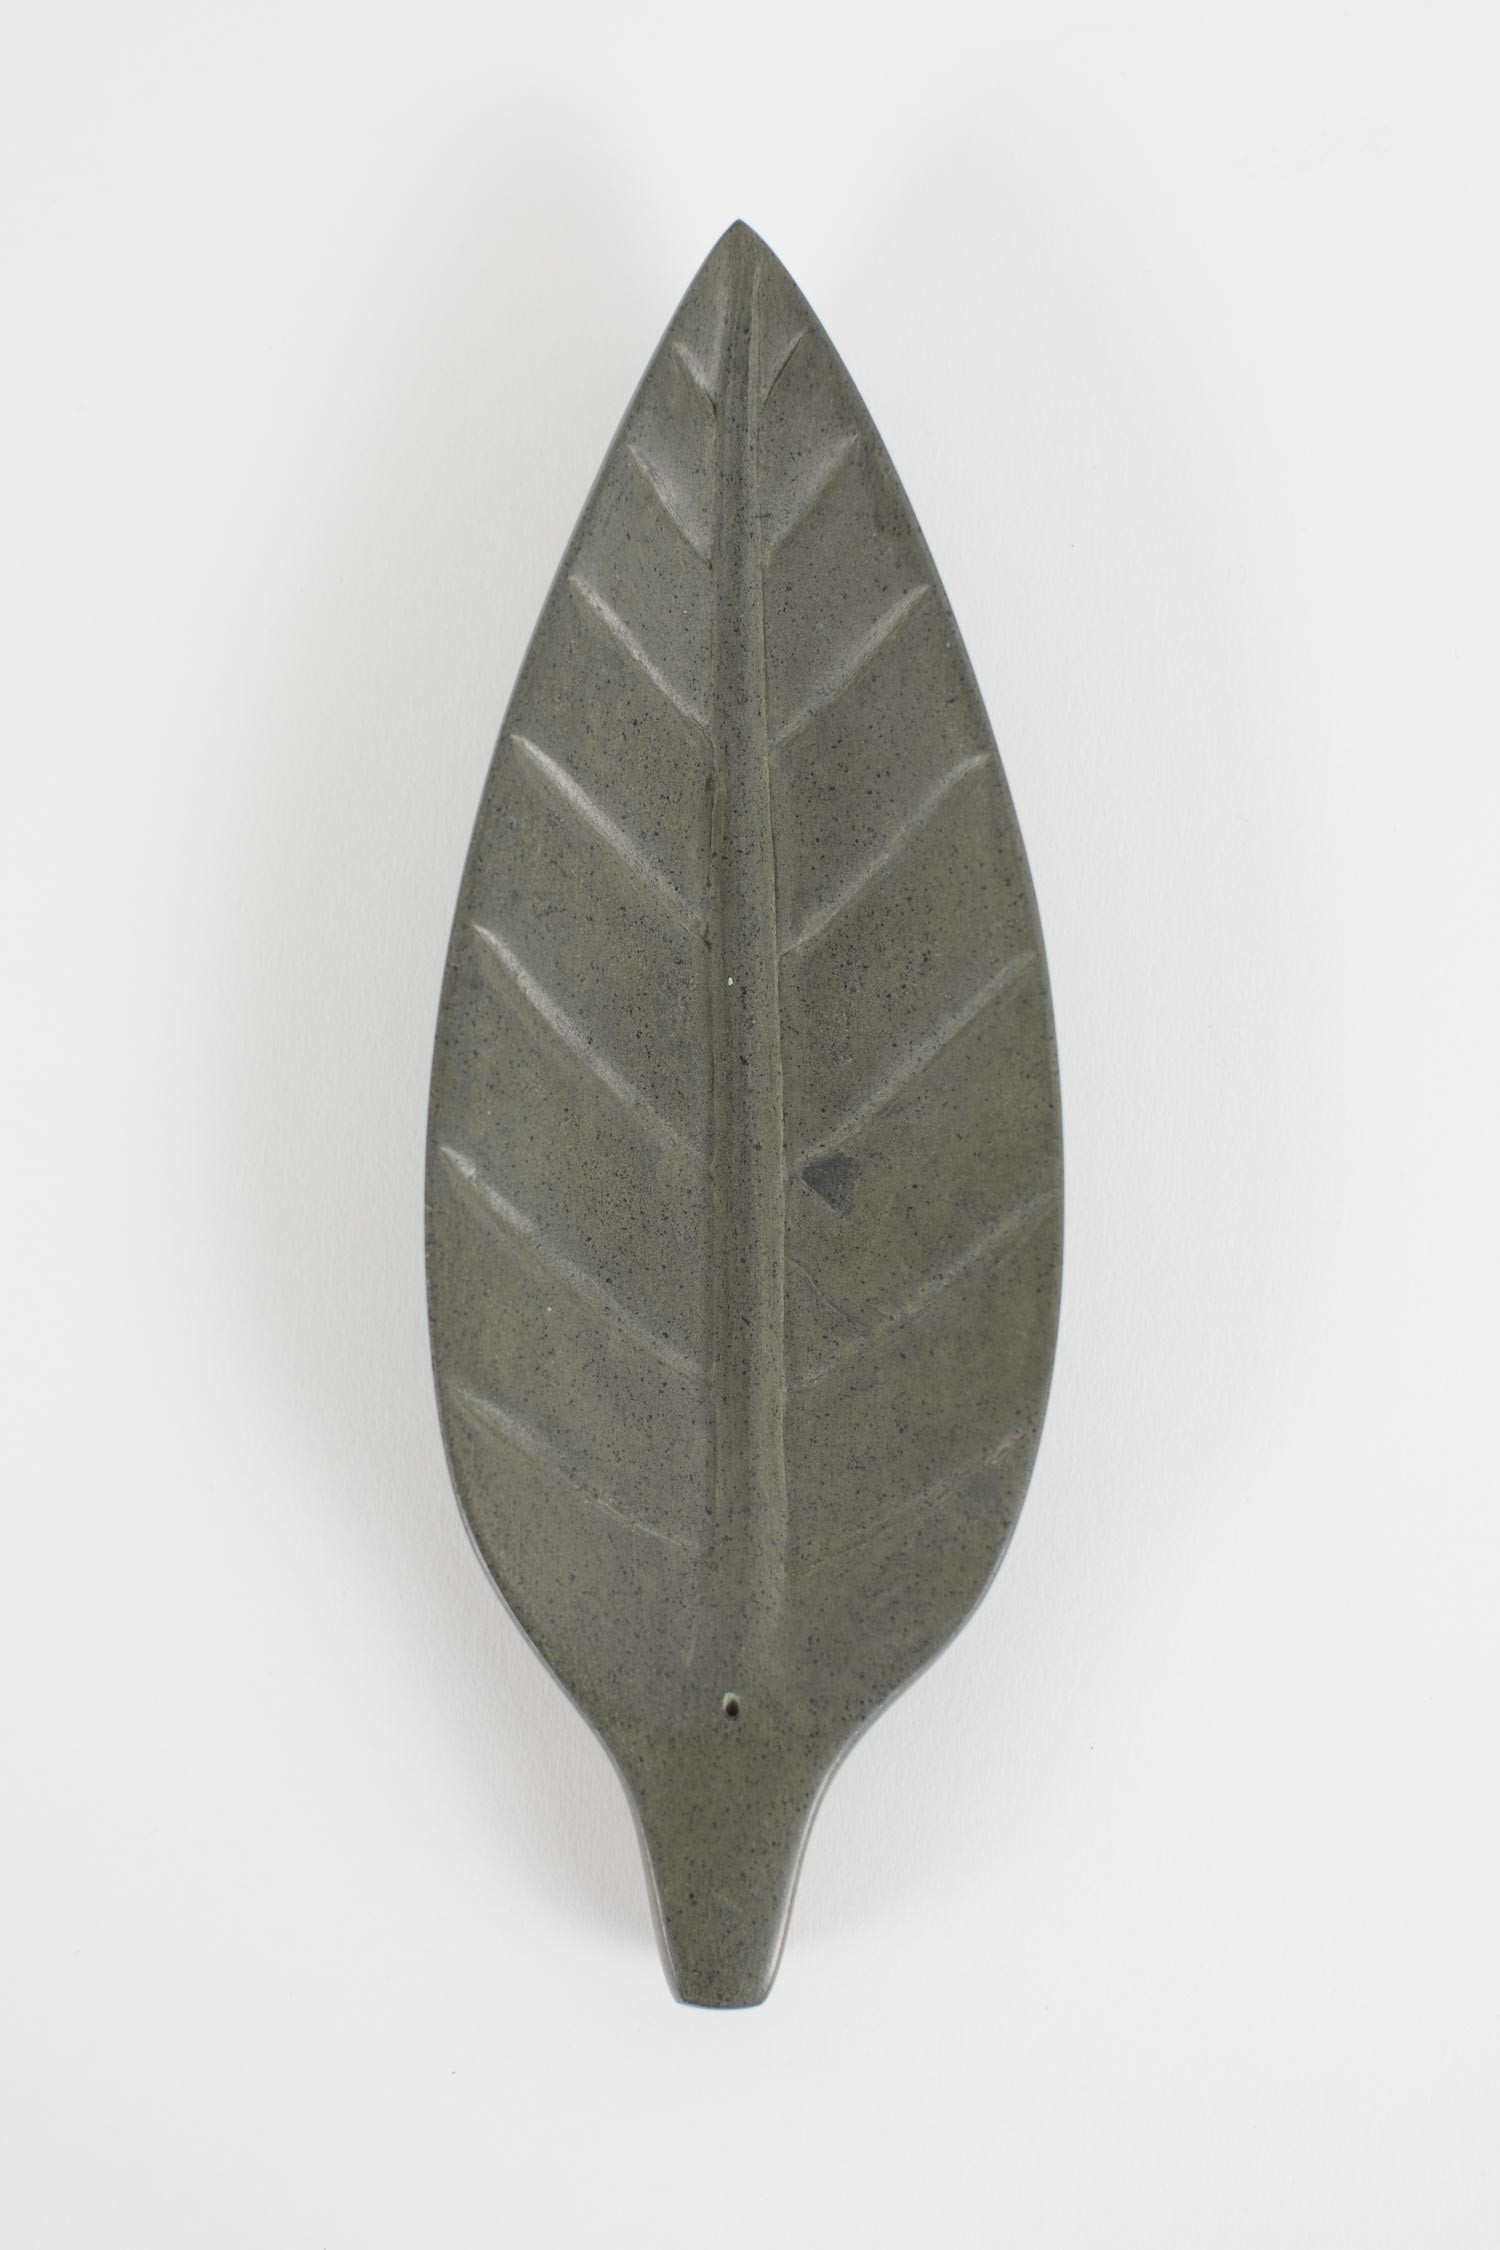 Leaf shaped, handcrafted in Haiti using gray river stone.